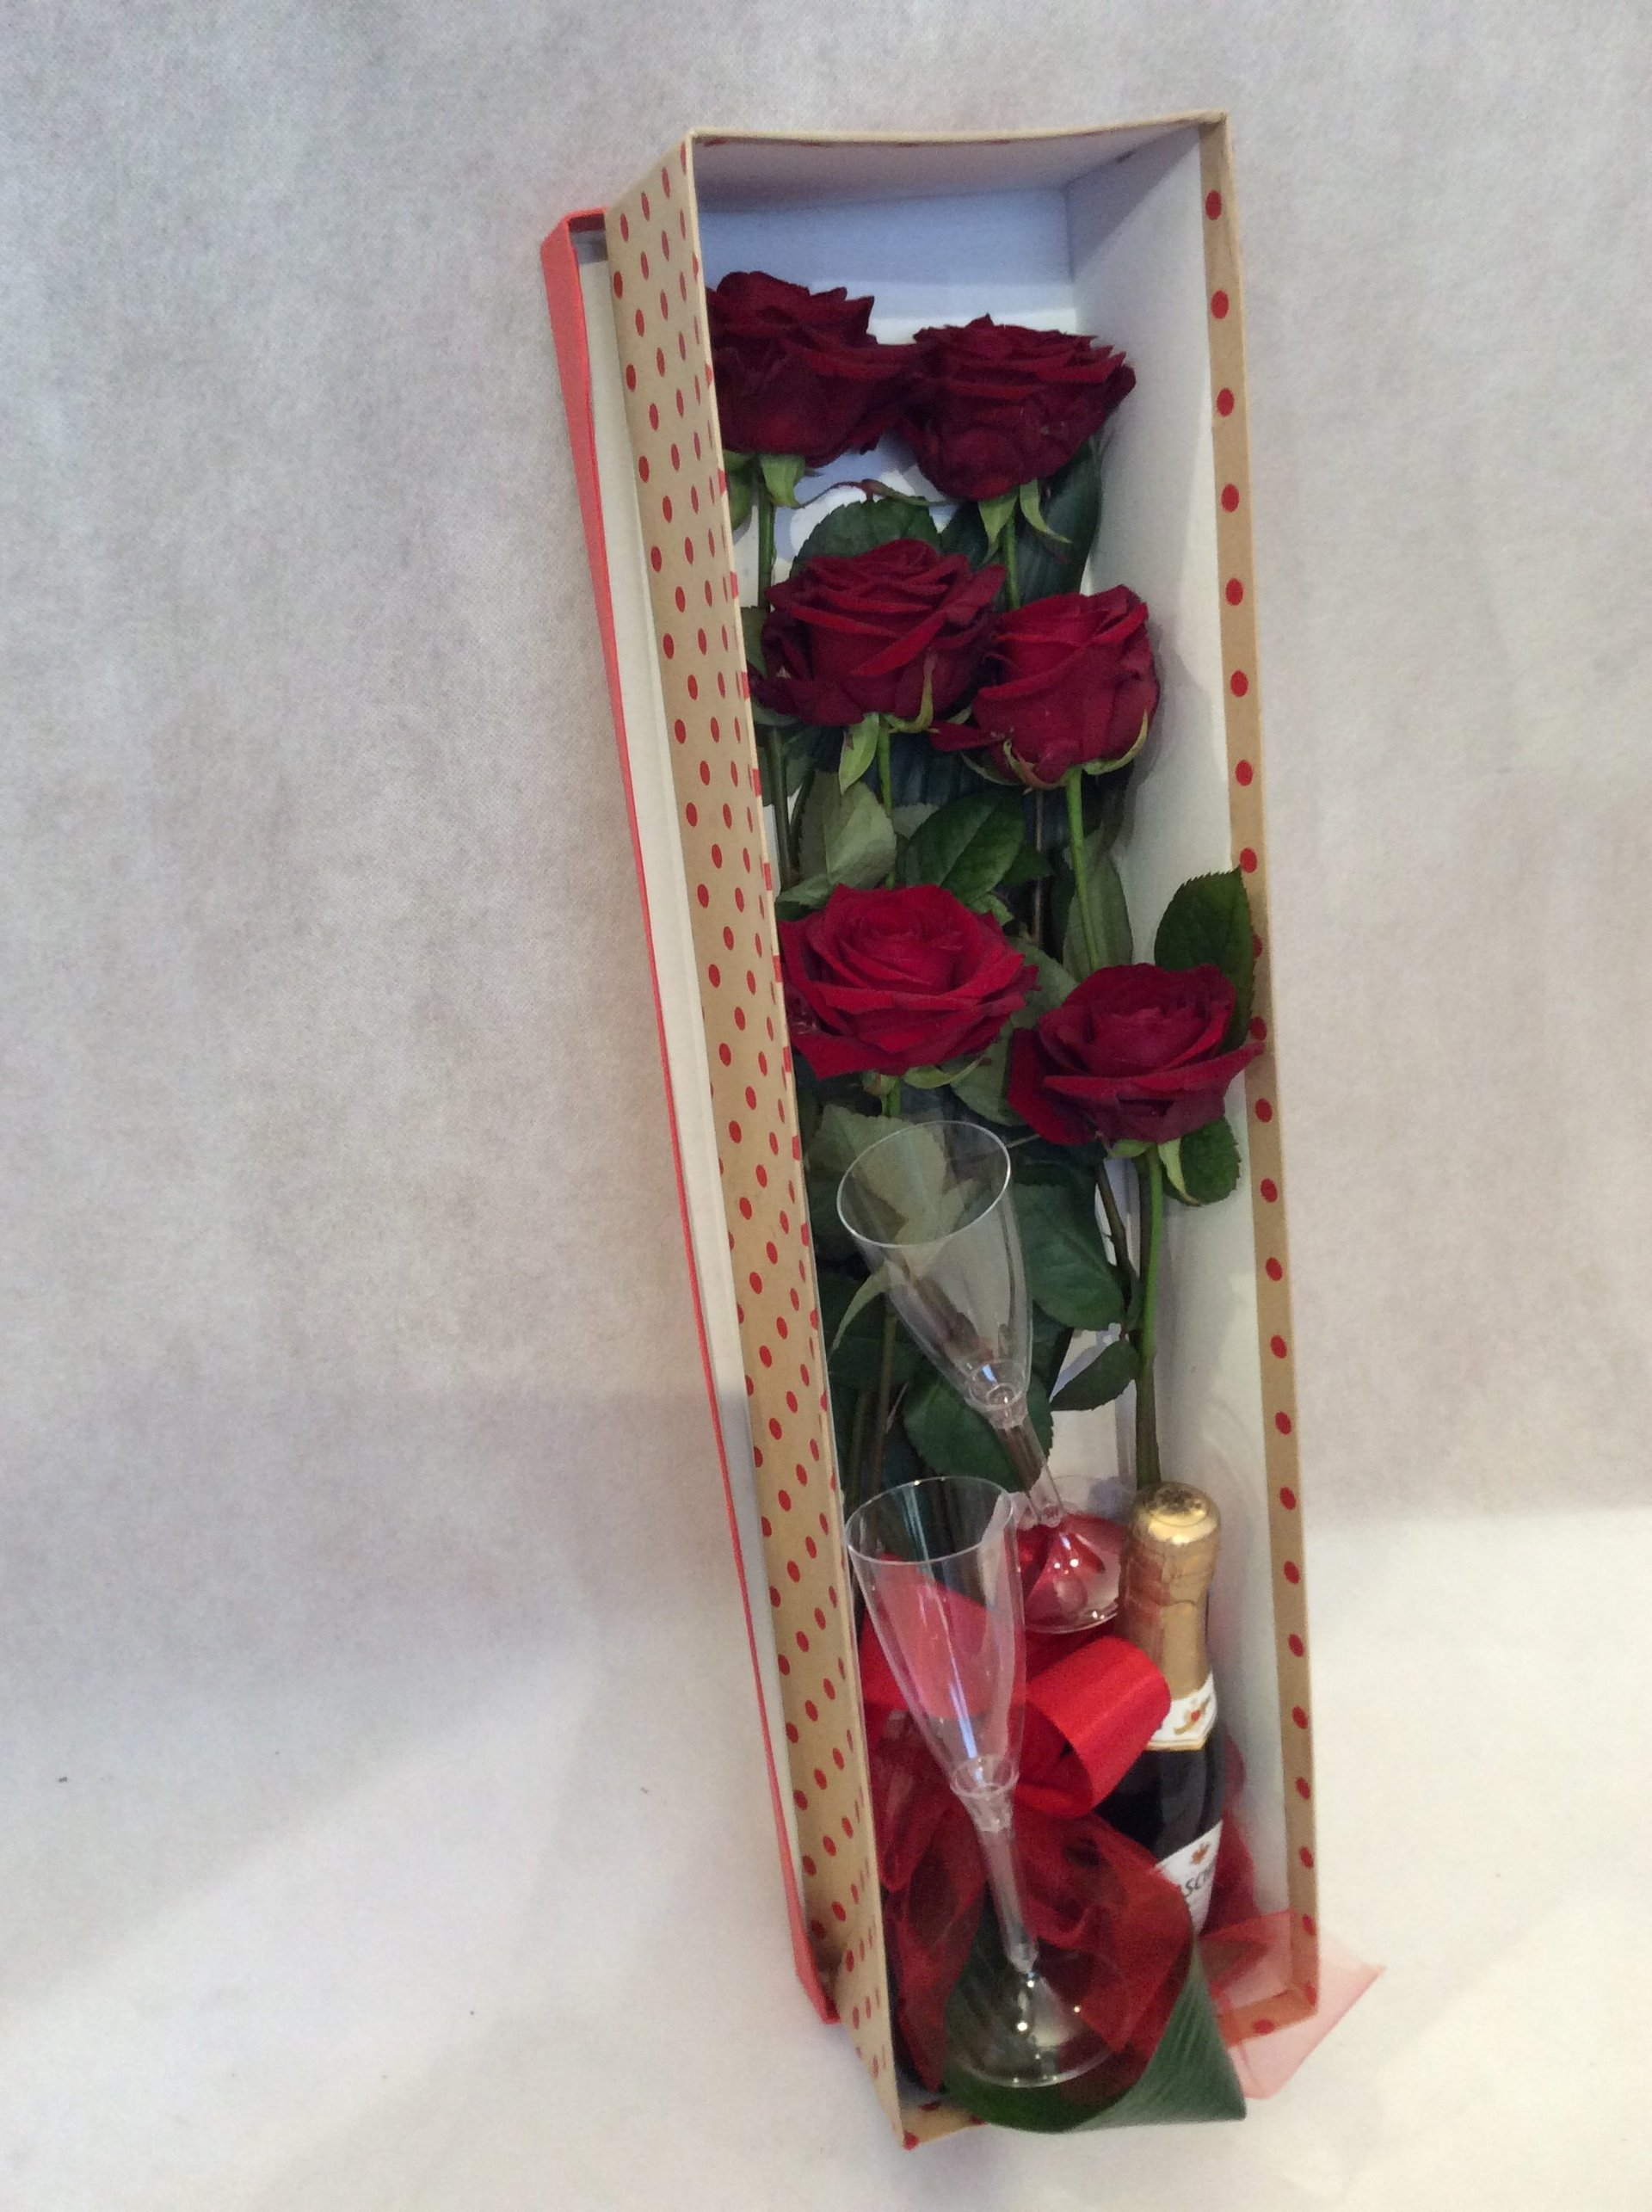 Regali floreali siracusa sr tin angelo fiori for Quadri con rose rosse